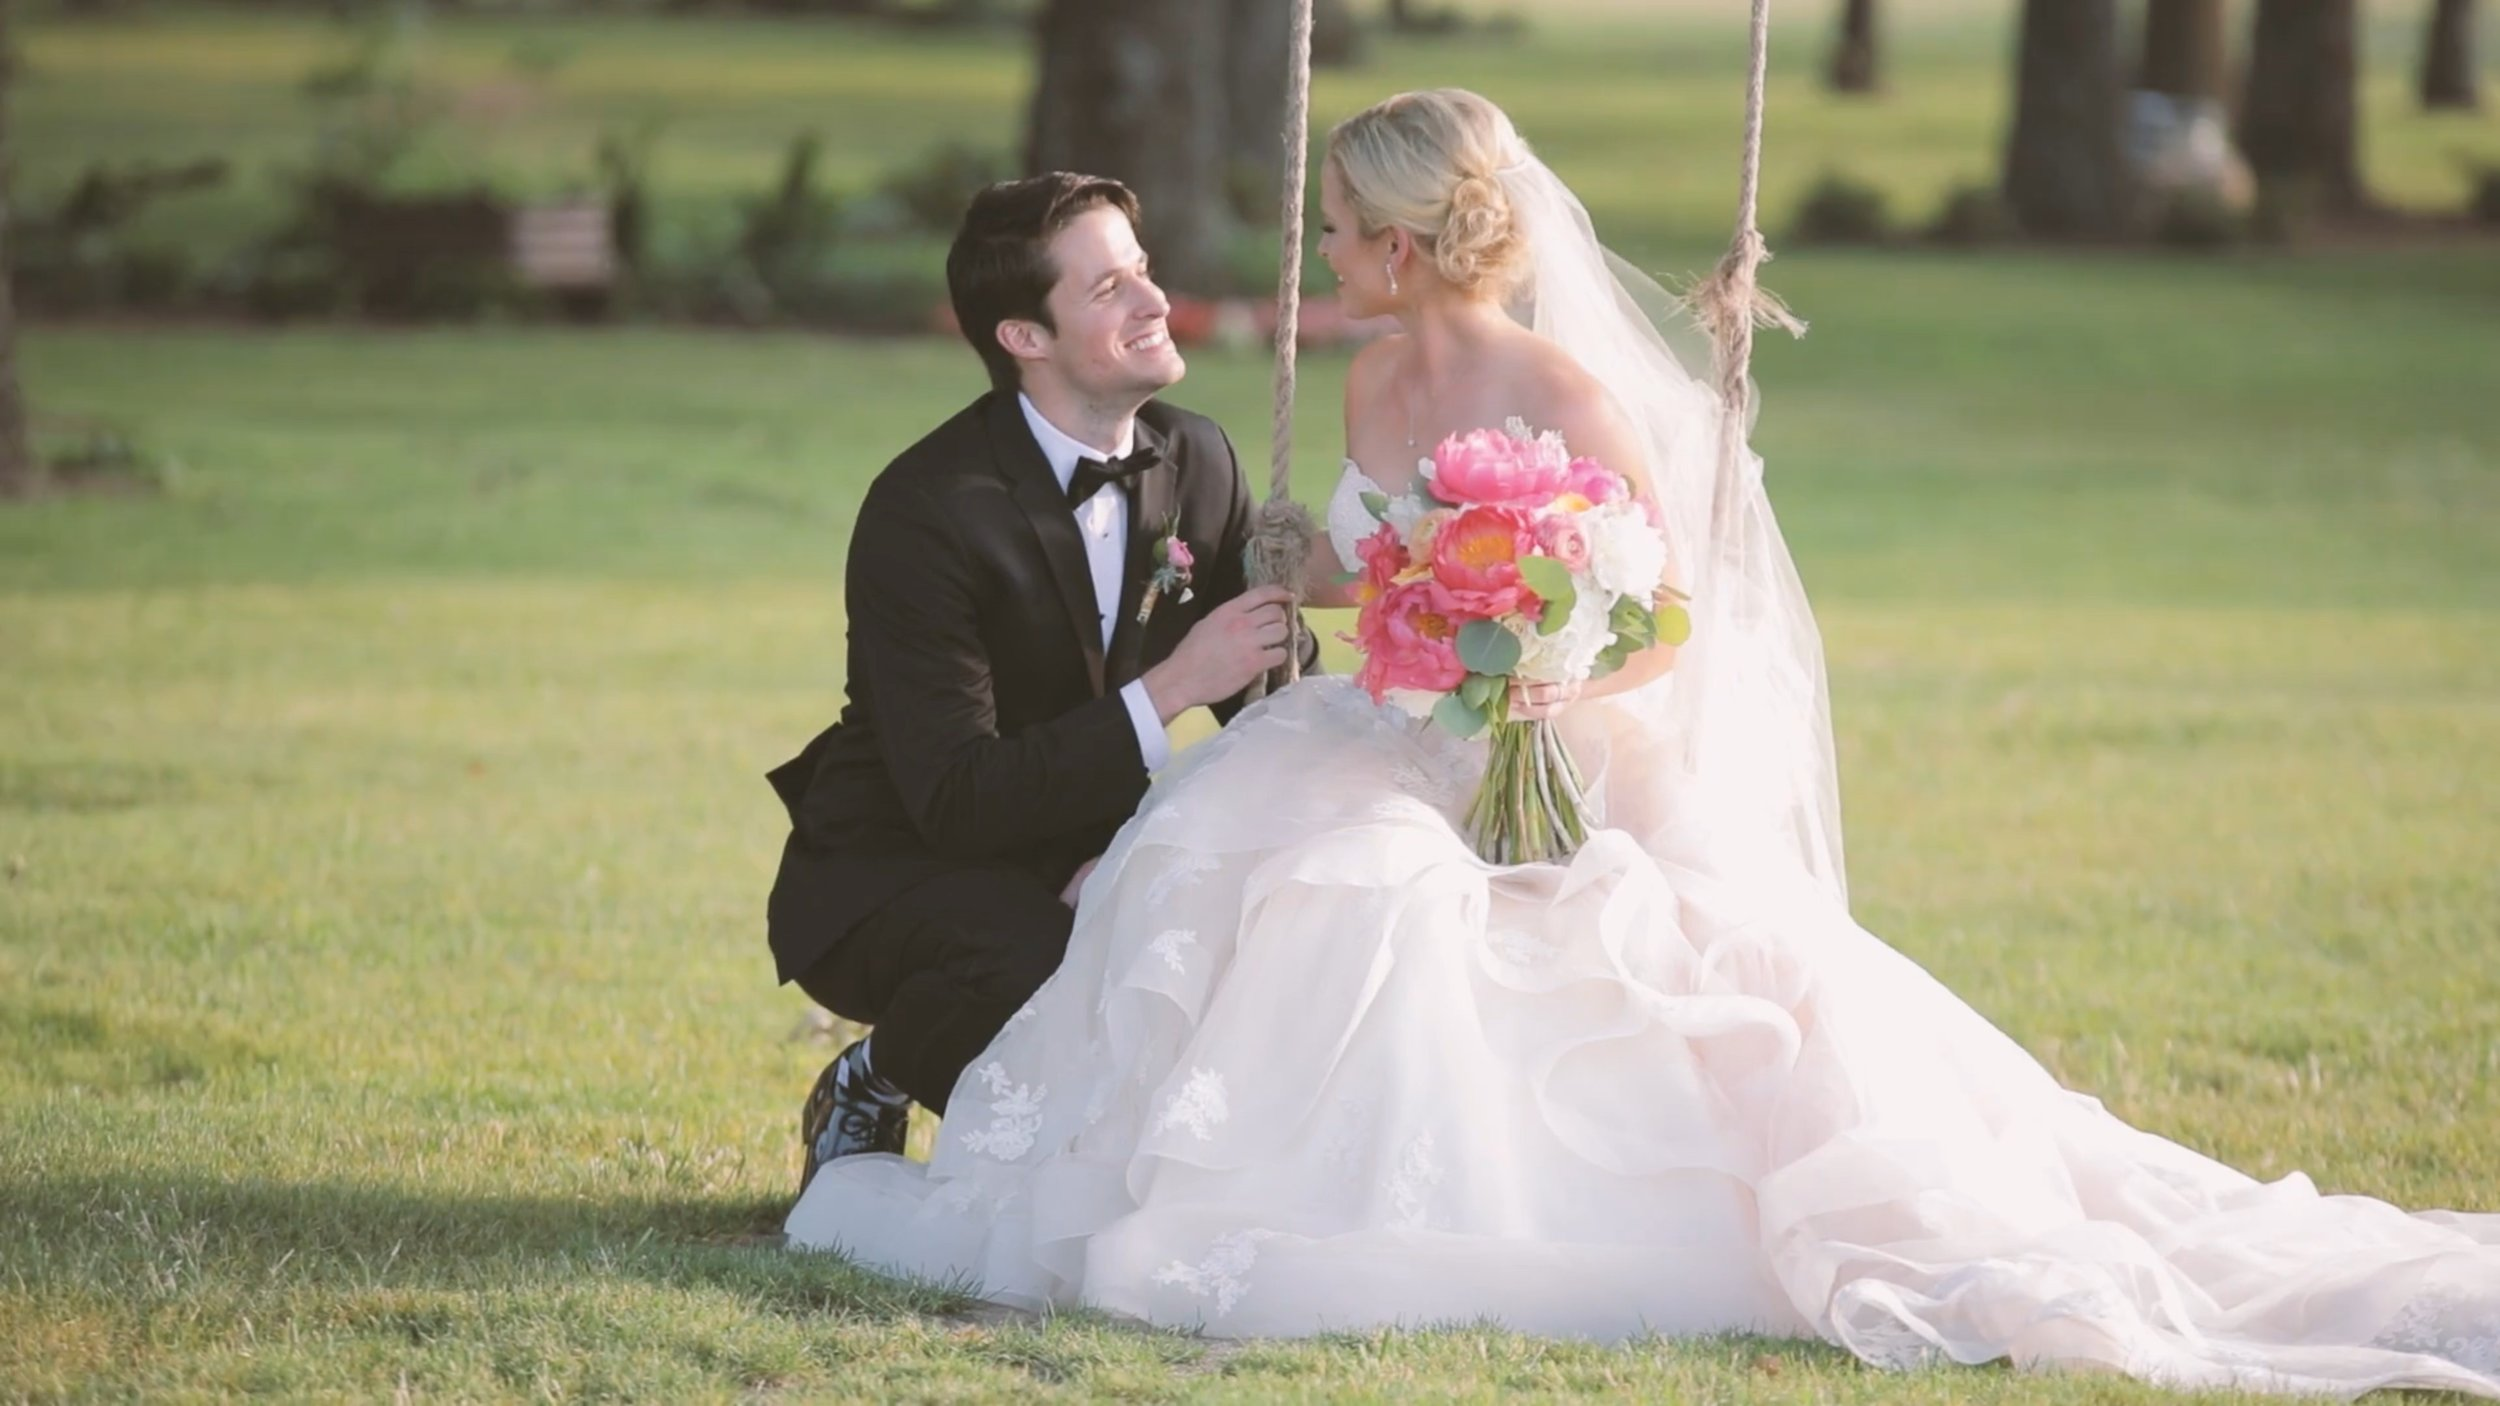 Bride sitting on a wooden sing with a bouquet of pink flowers while her groom kneels beside her.